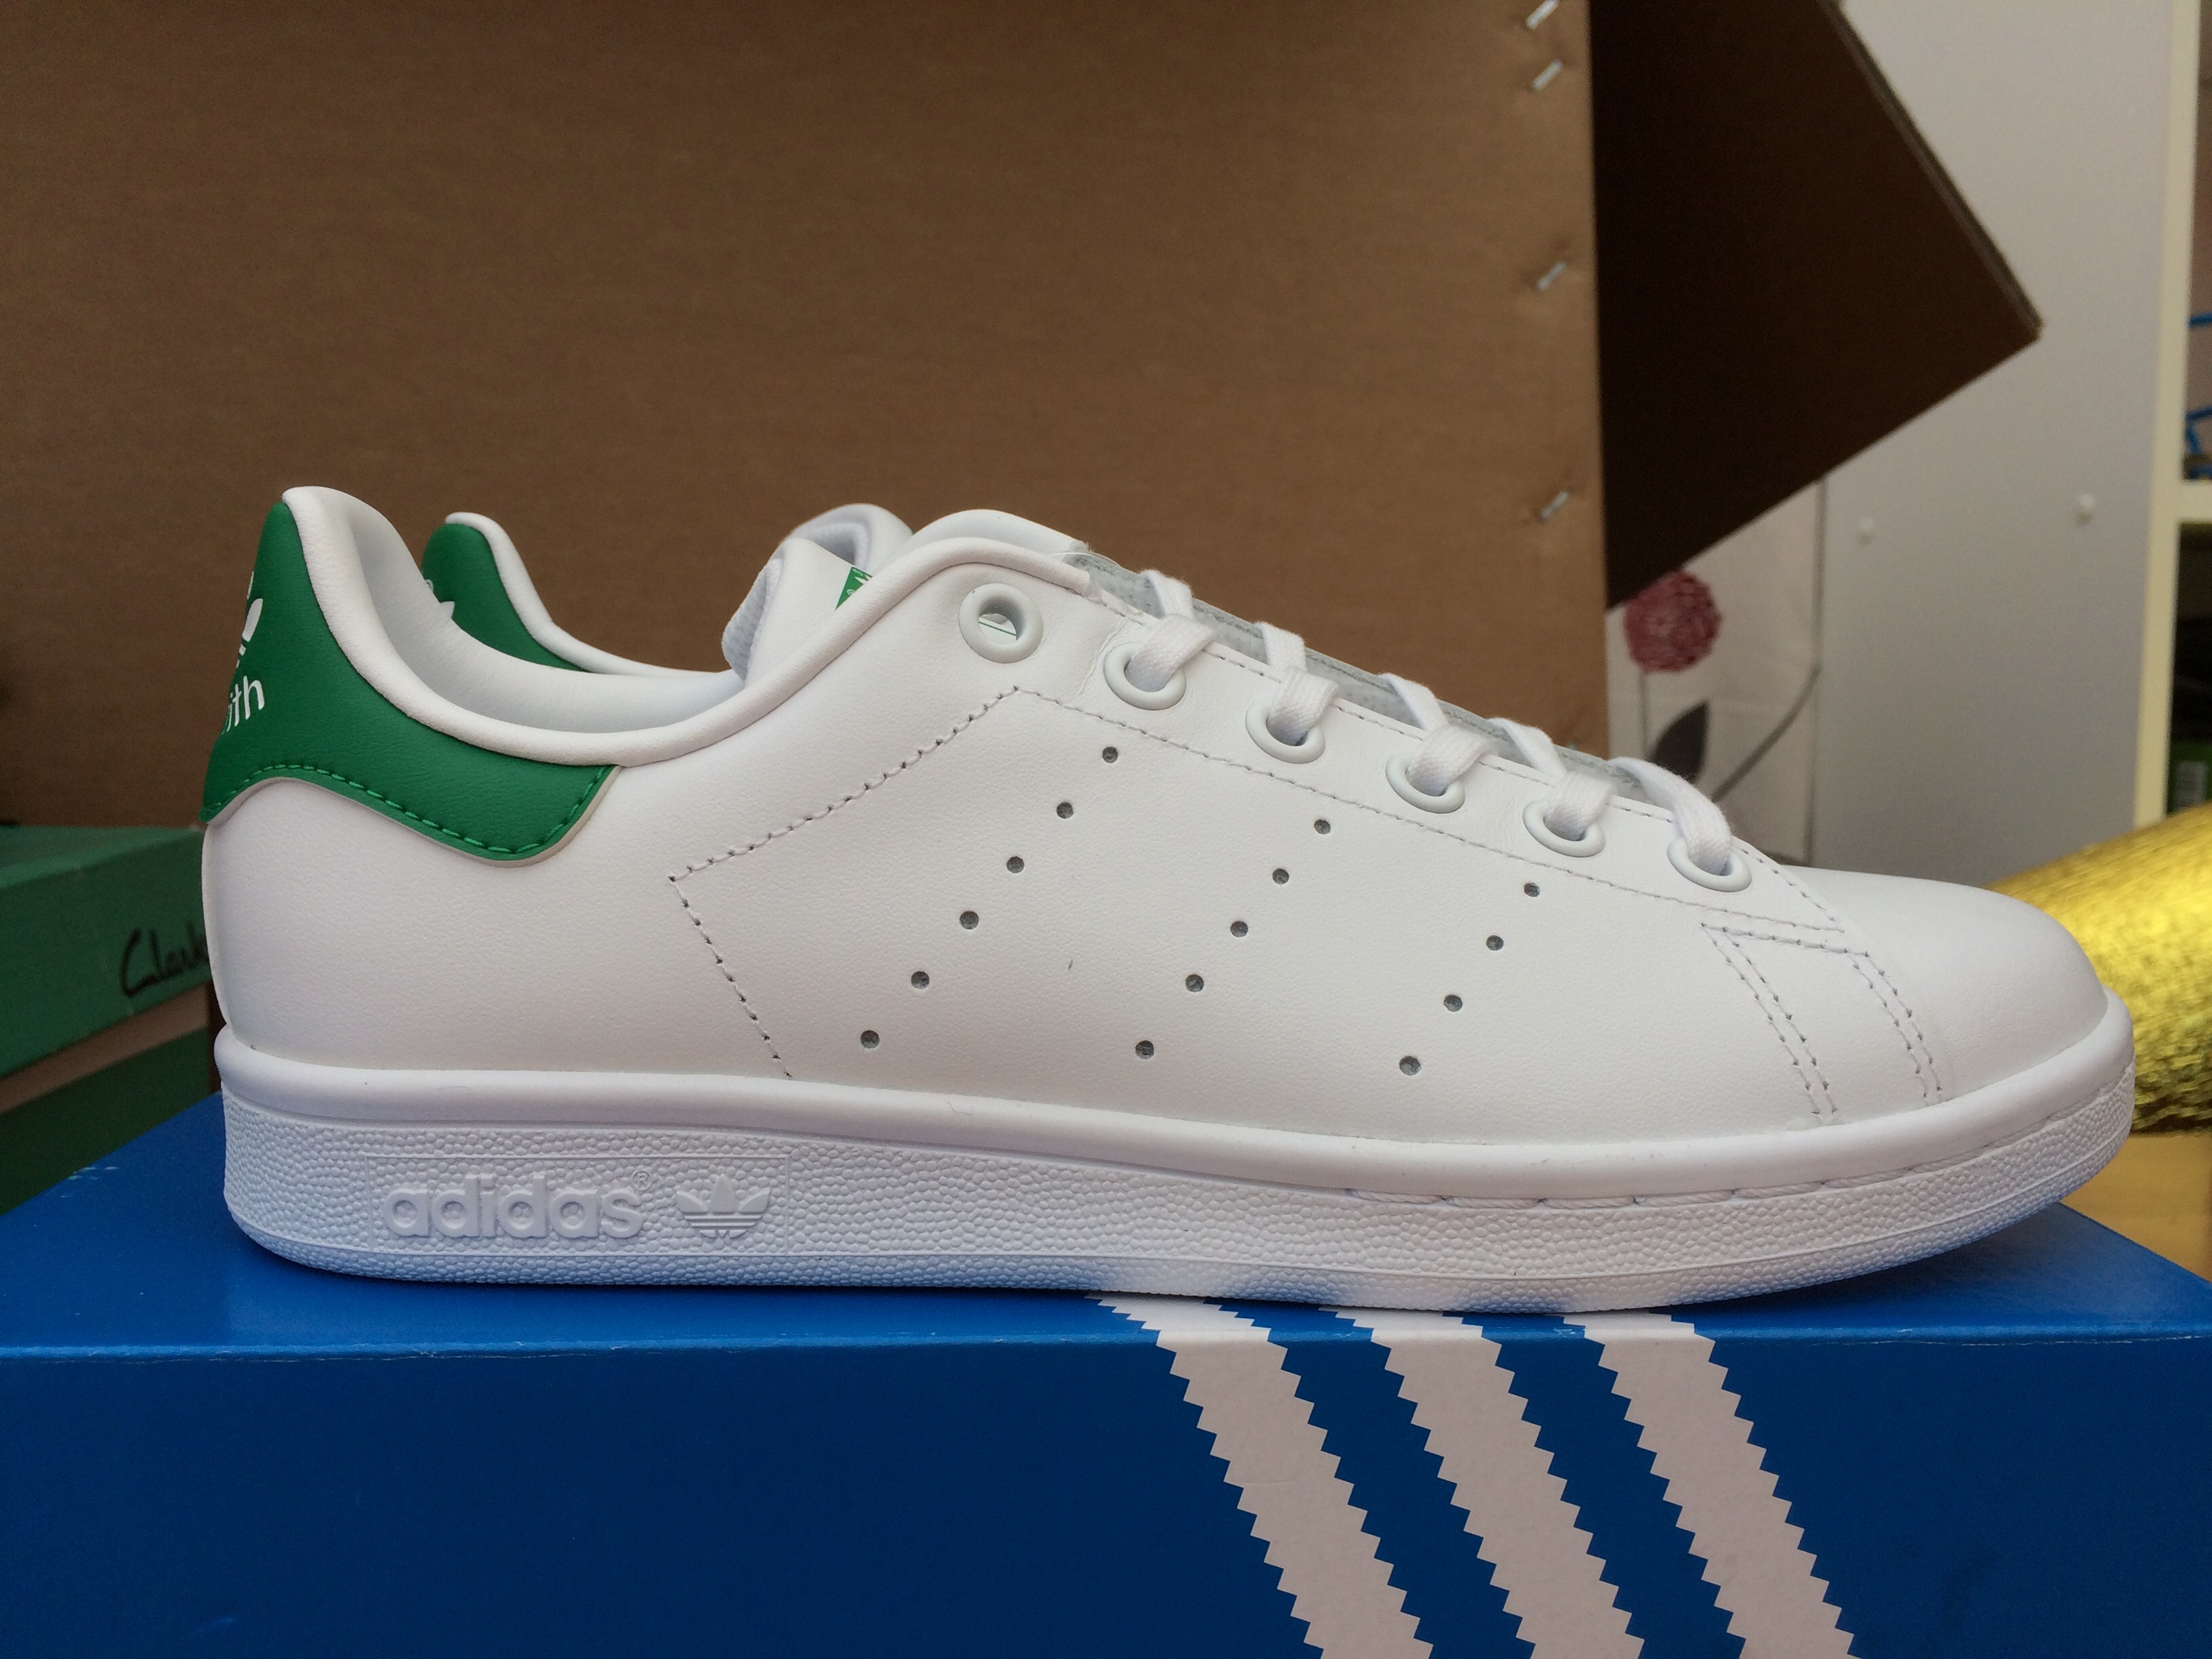 Adidas STANSMITH green tail white shoes M20605